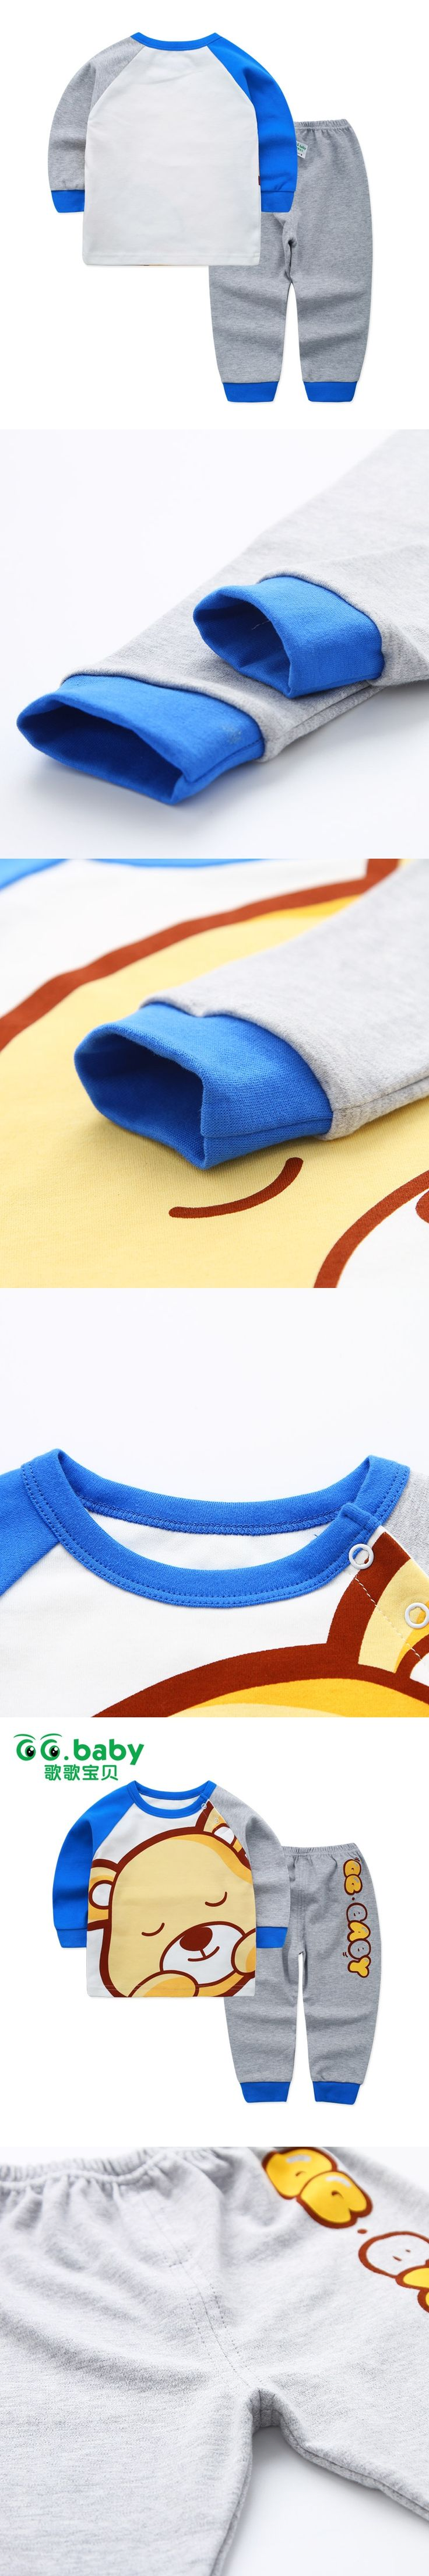 Newborn Baby Boys Clothes Set Suits Baby Girls Clothing Winter Pajamas Set Toddler Long Sleeve Cotton Baby Boy Outfits For Boys